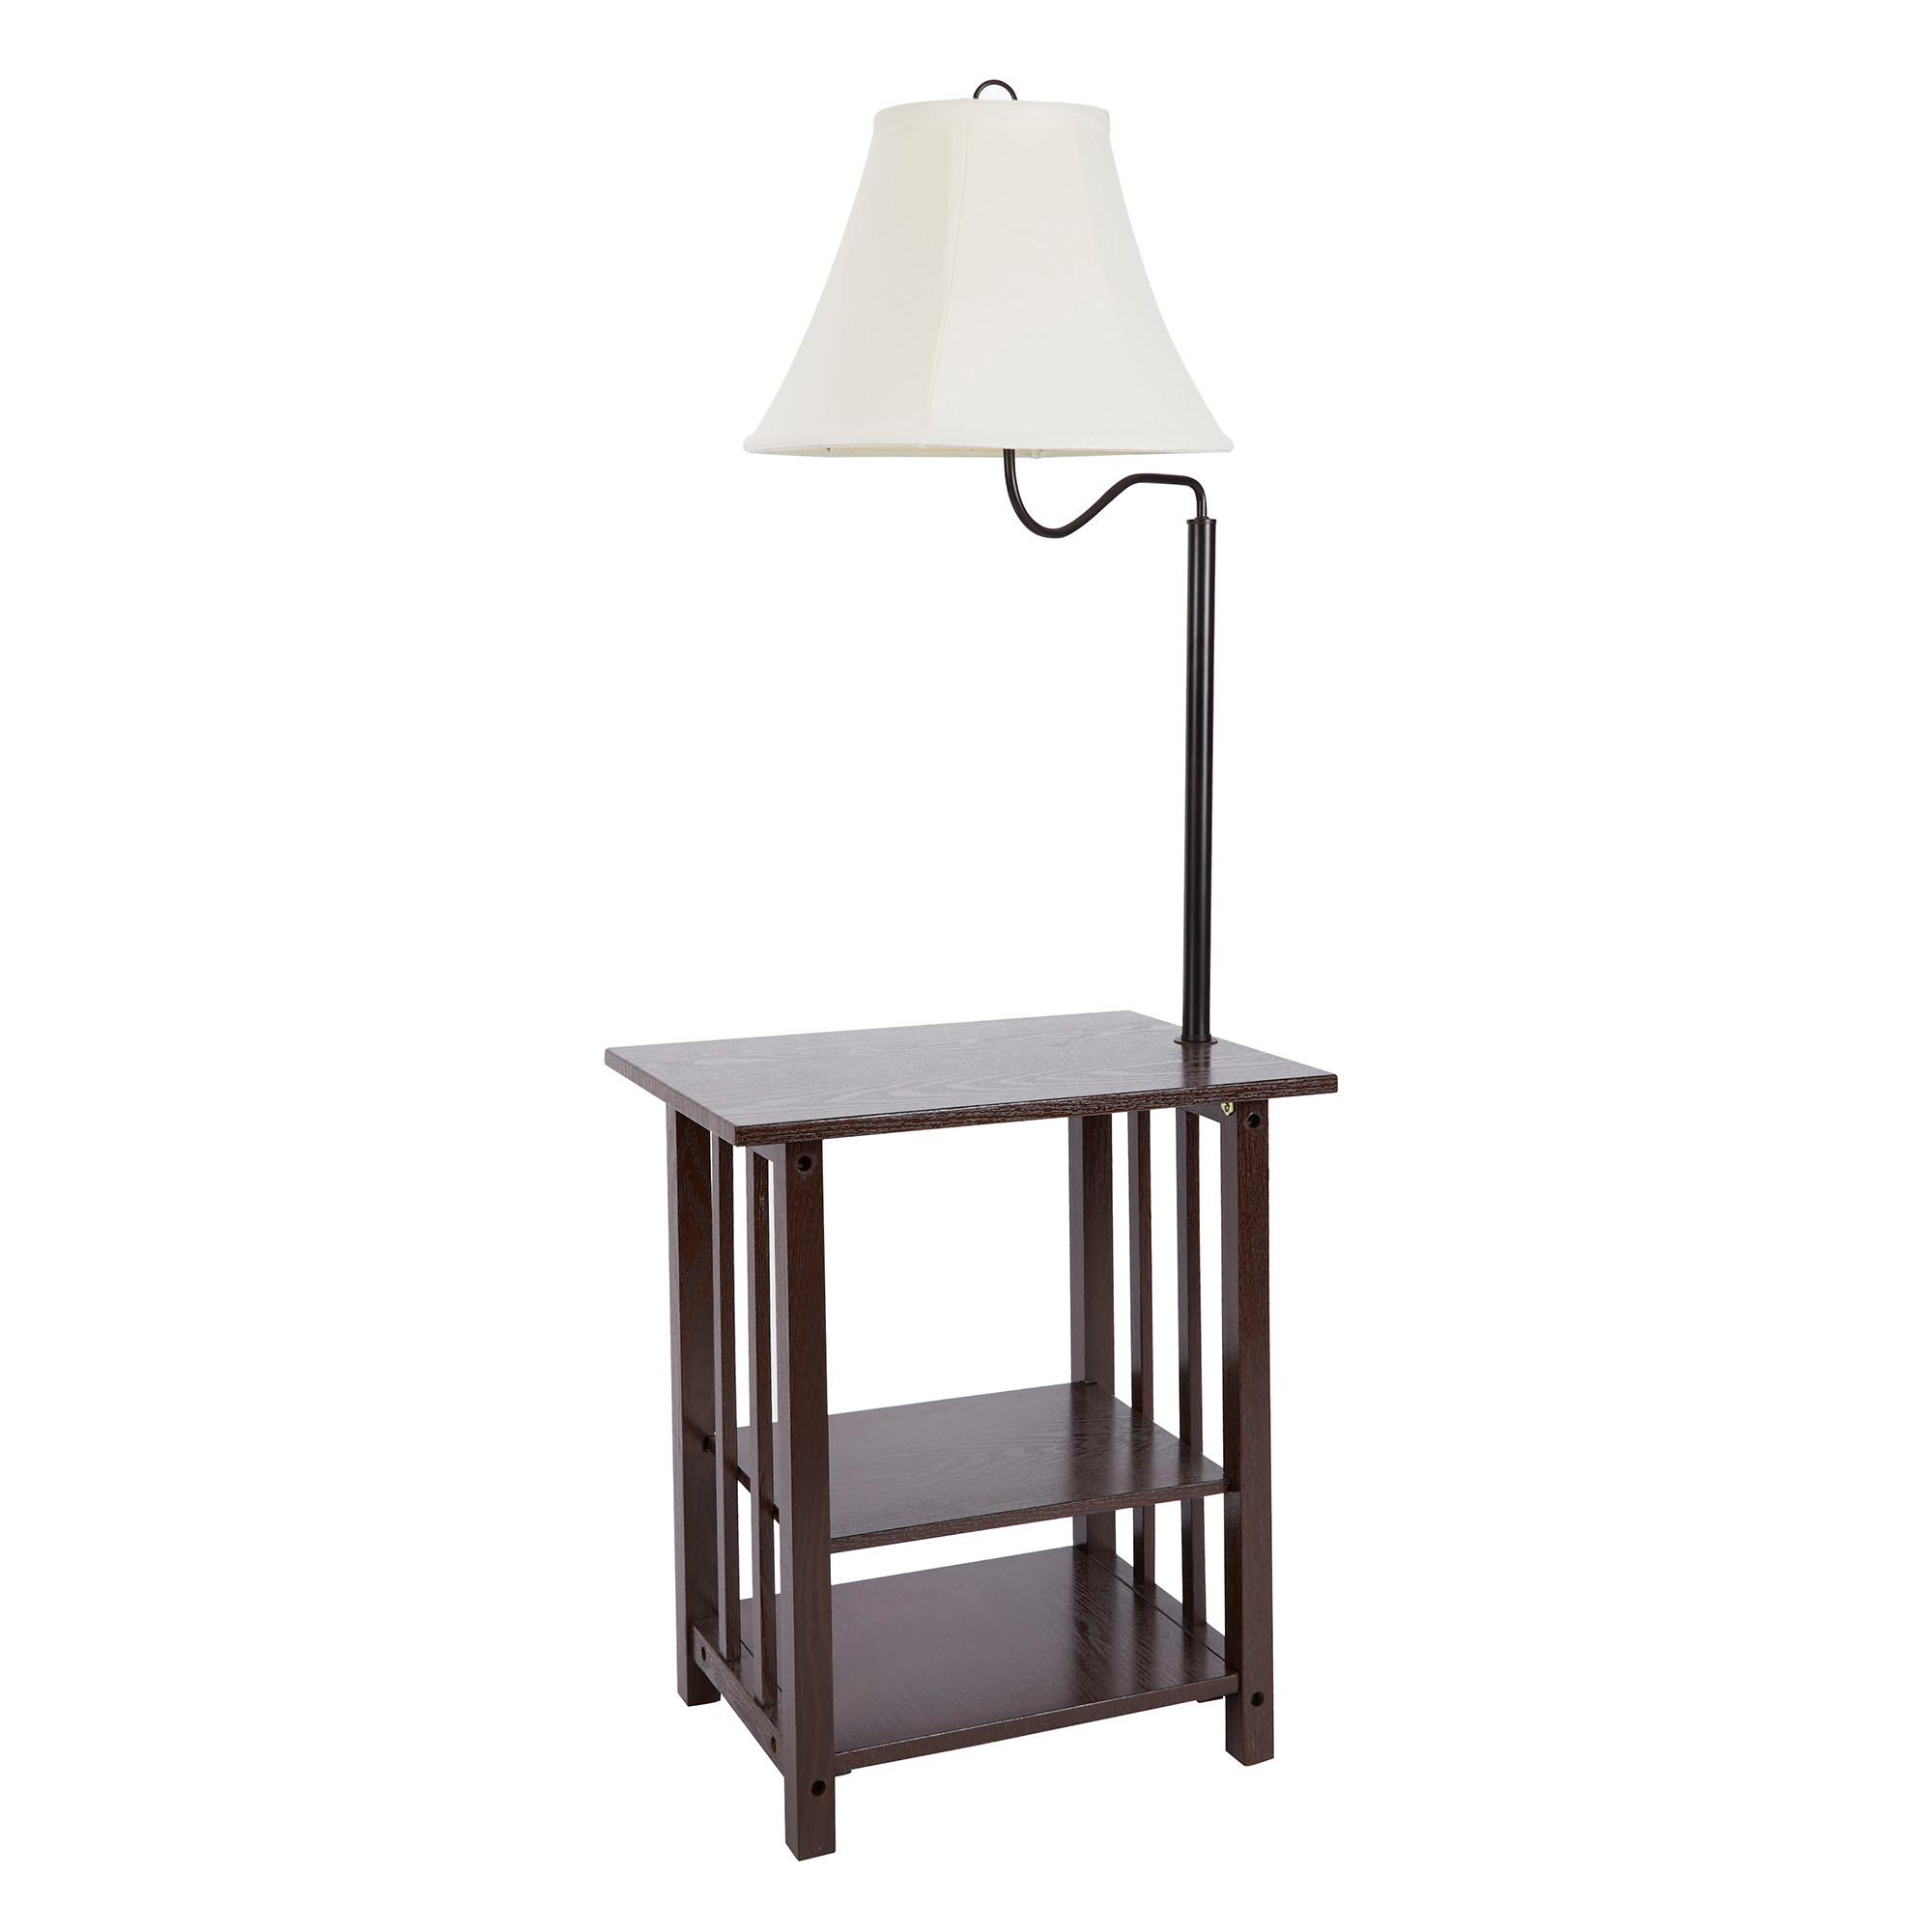 homes and gardens 3 rack end table floor lamp cfl bulb included. Black Bedroom Furniture Sets. Home Design Ideas